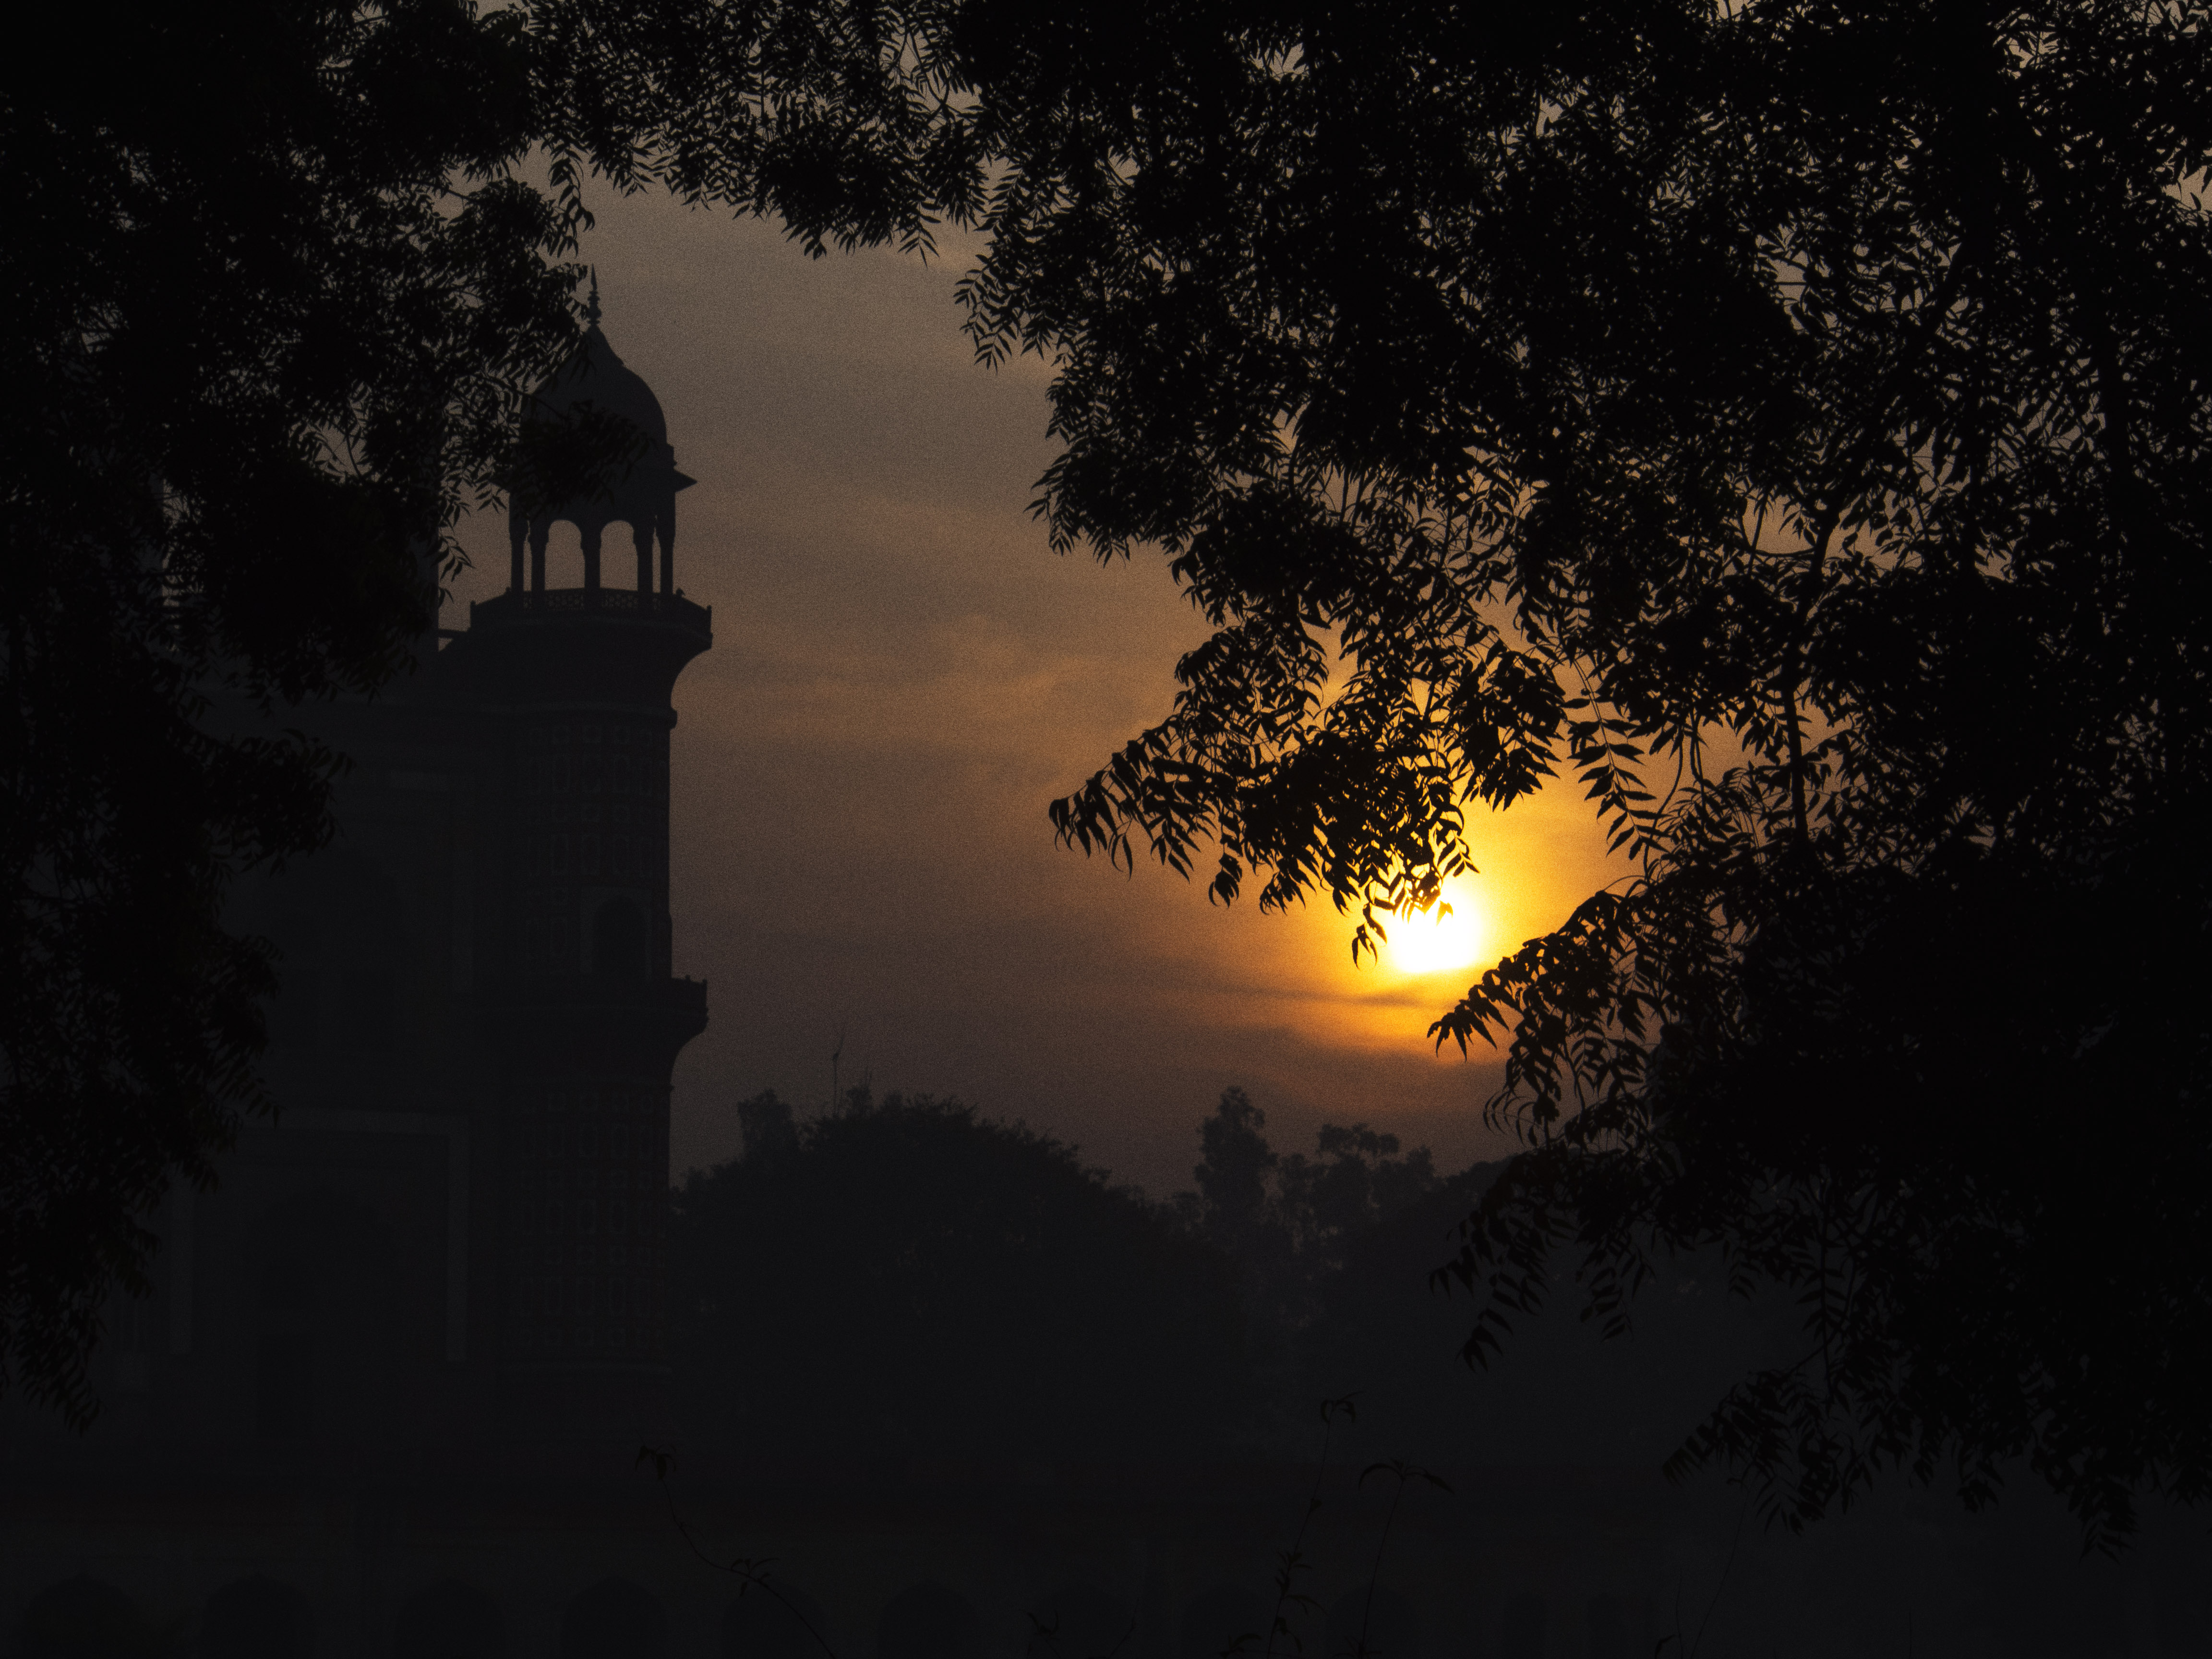 stock-photo-daybreak-in-delhi-130416321.